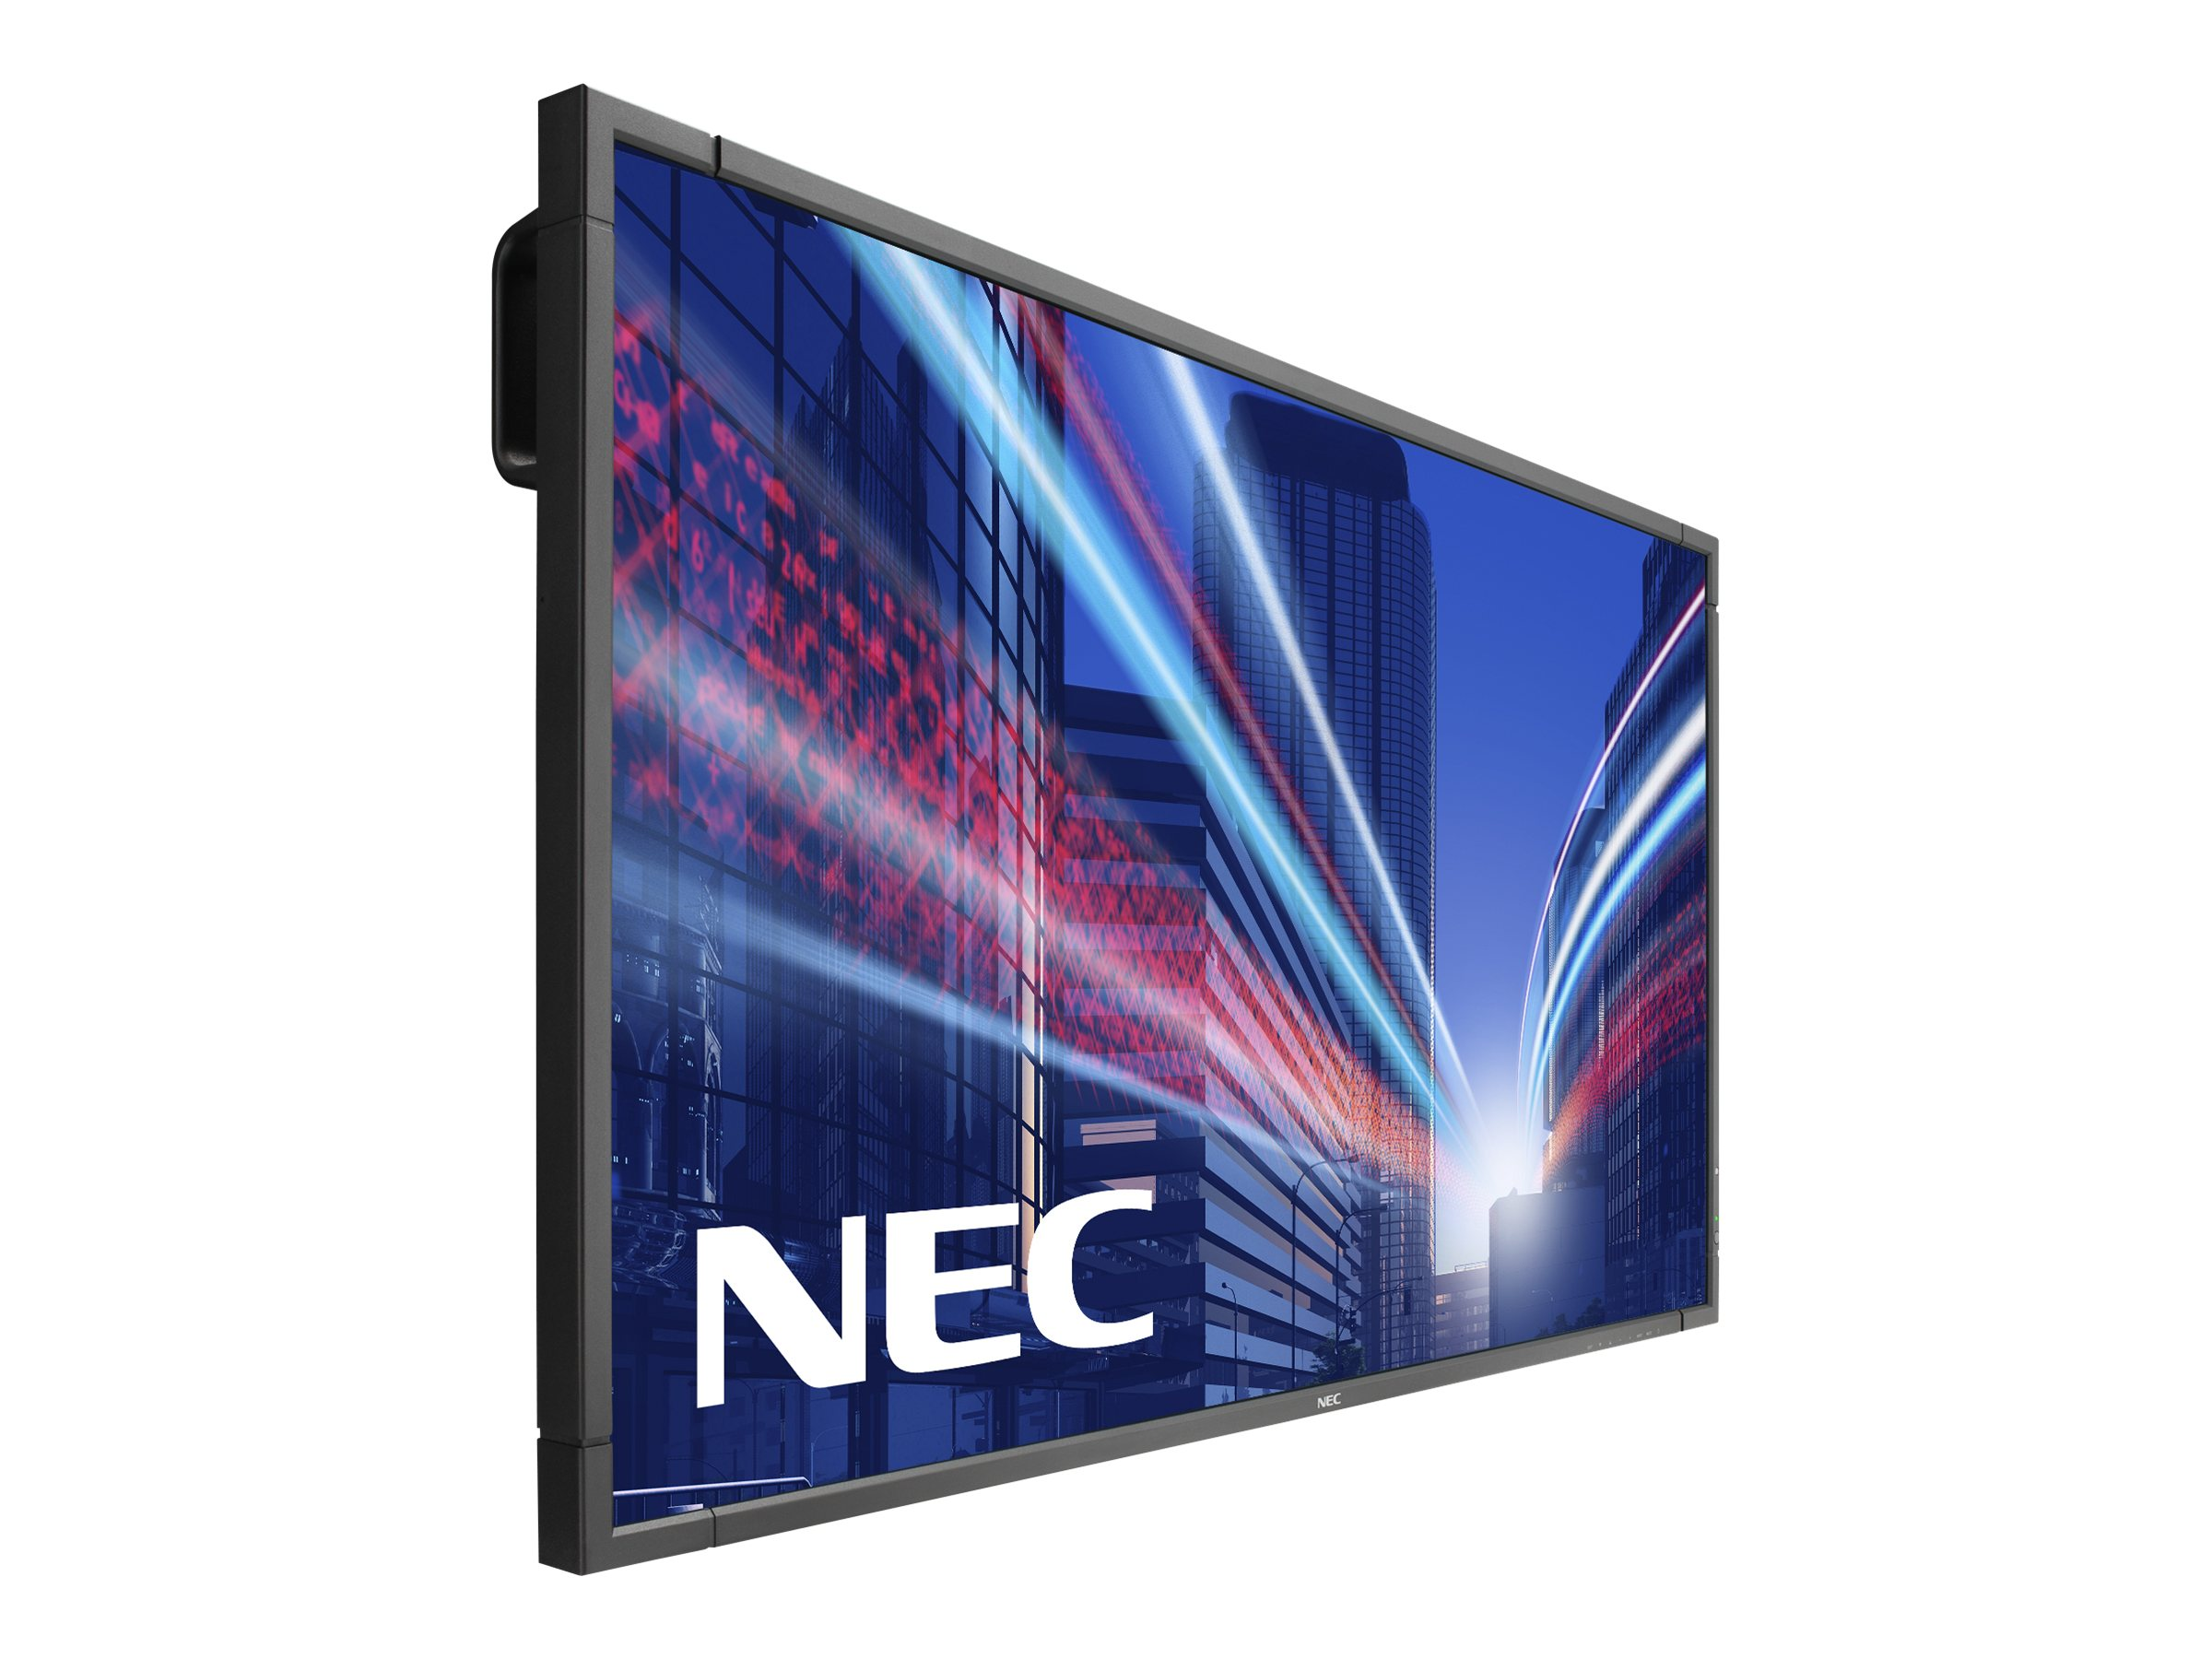 NEC 40 P403 Full HD LED-LCD Monitor, Black